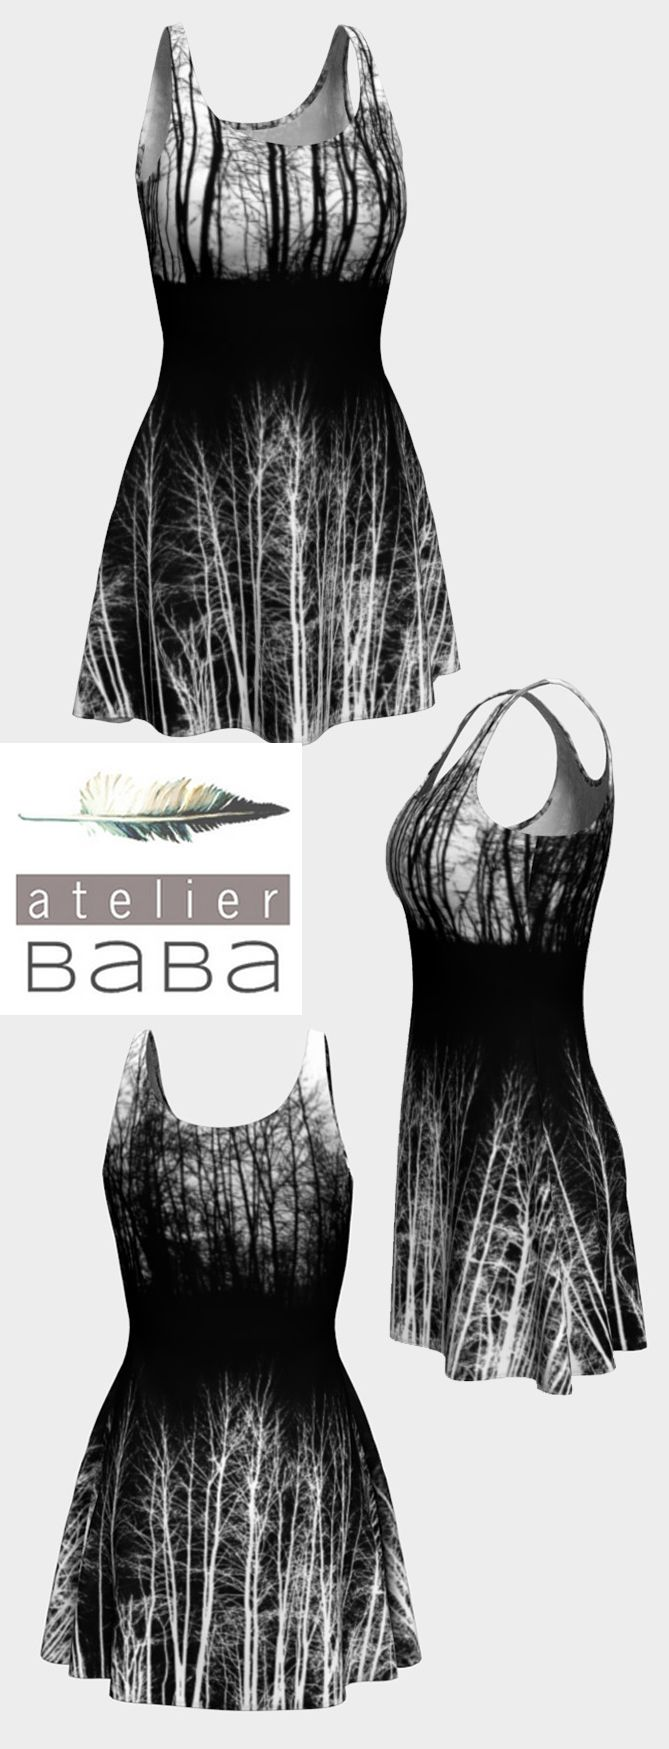 Midnight Forest Flare Dress by atelierbaba on Art of Where. Lovely.